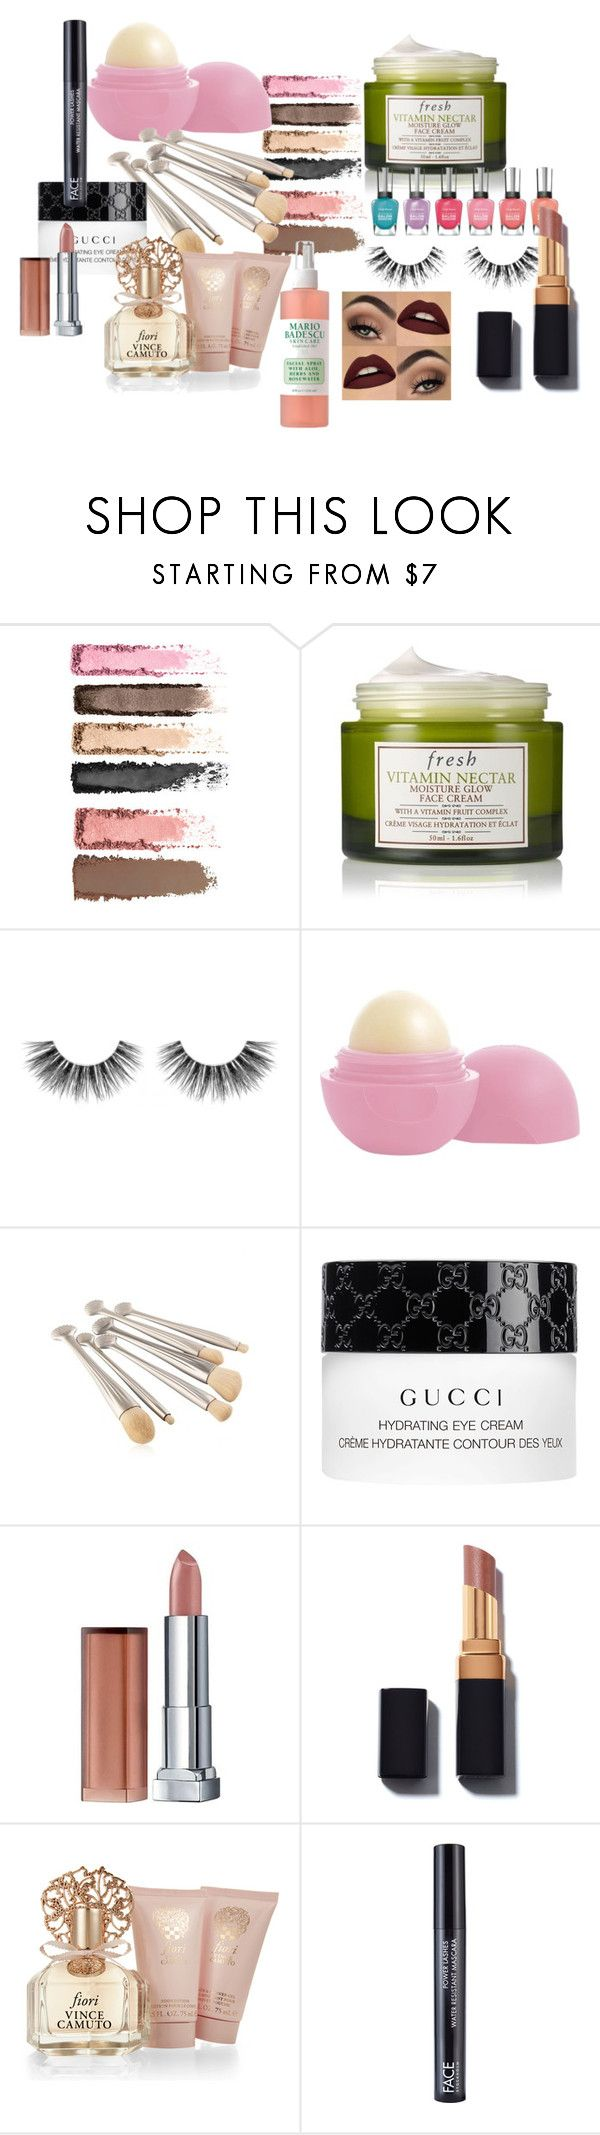 """""""Top Beauty Products for Apr 16th, 2016"""" by polyvore liked"""